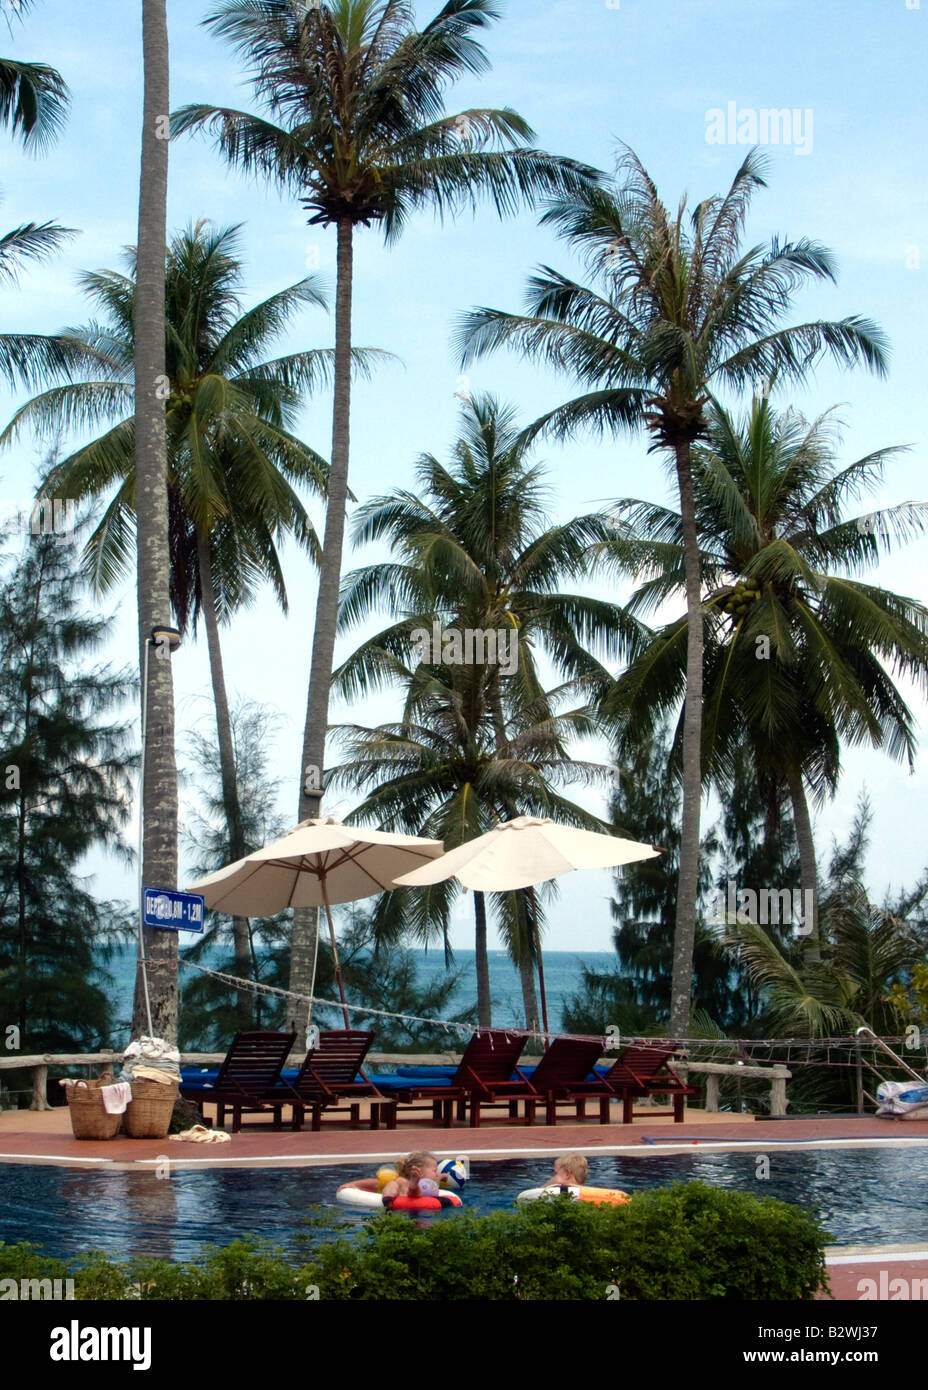 Resort pool surrounded by palm trees Phu Quoc Island Vietnam - Stock Image